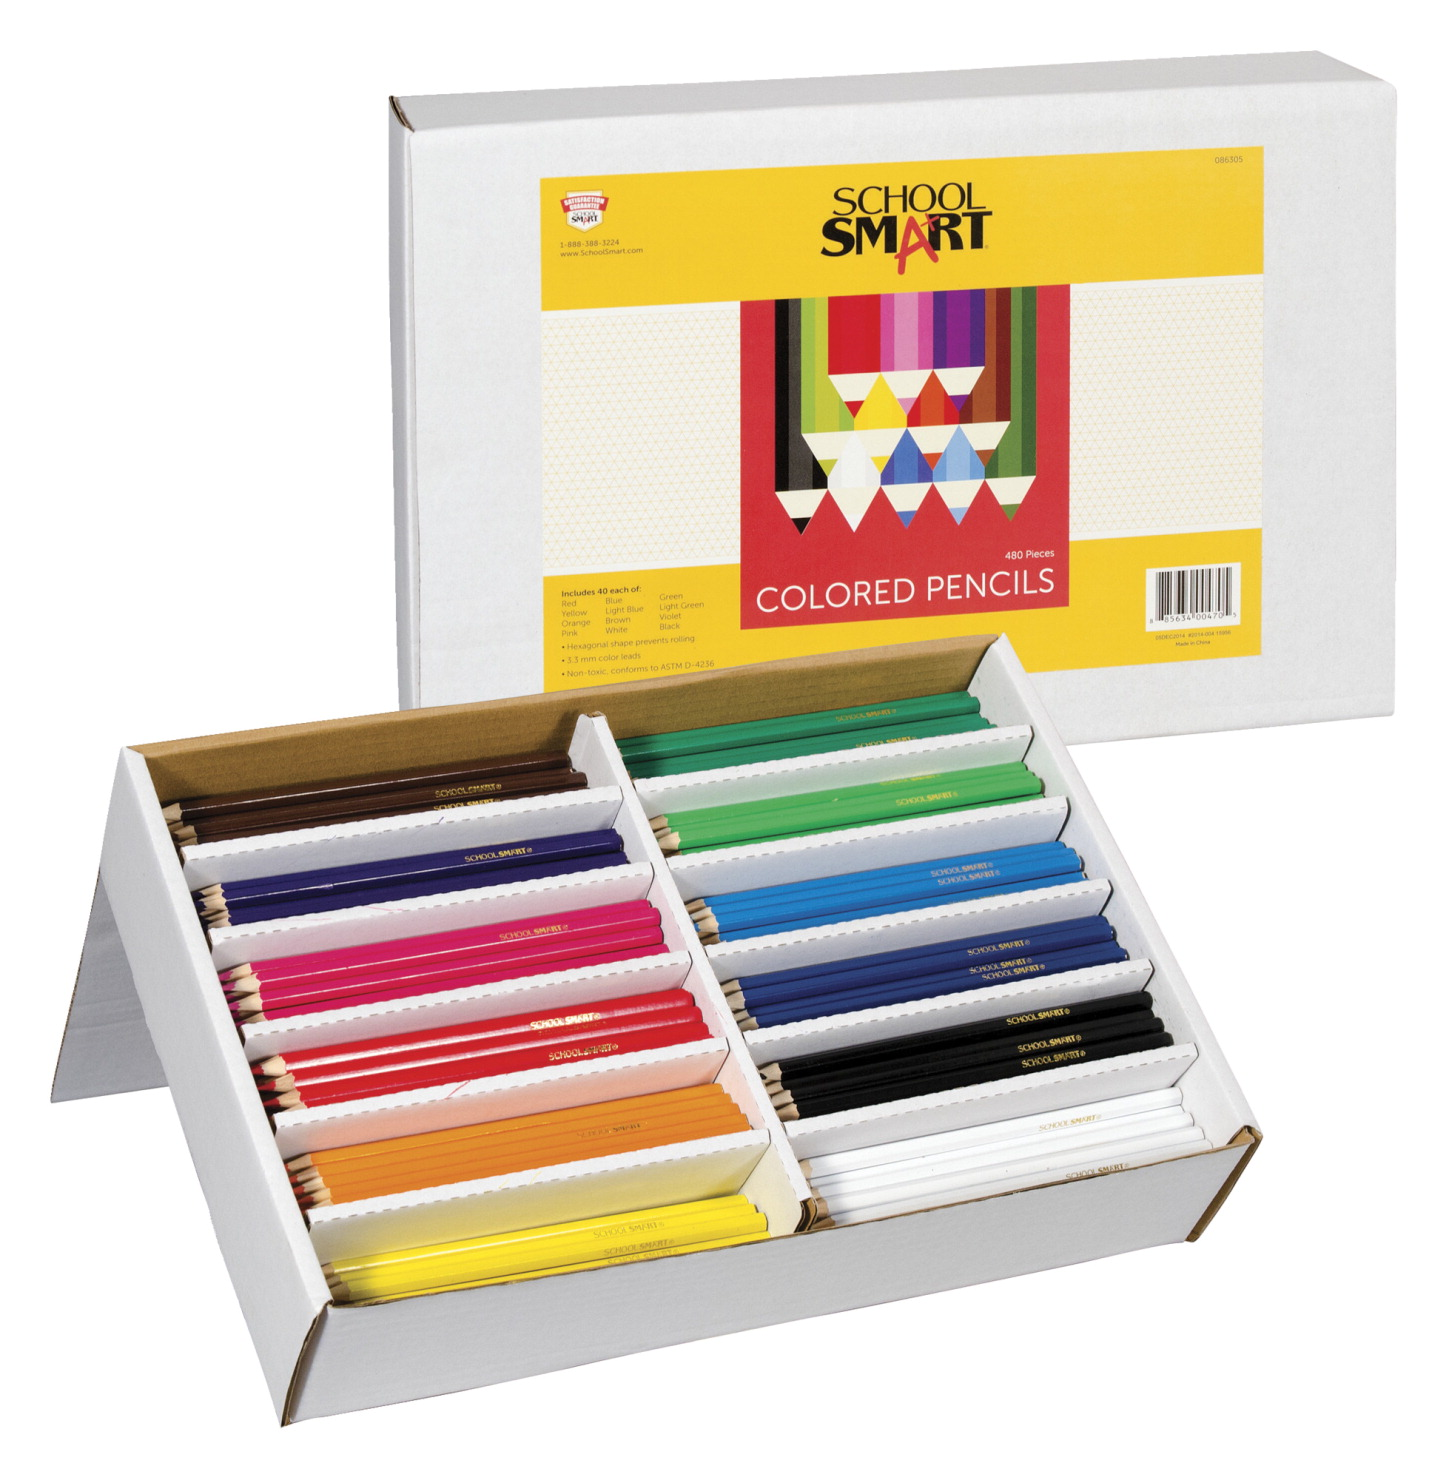 School Smart Professional Colored Pencils, Assorted Colors, Set of 480